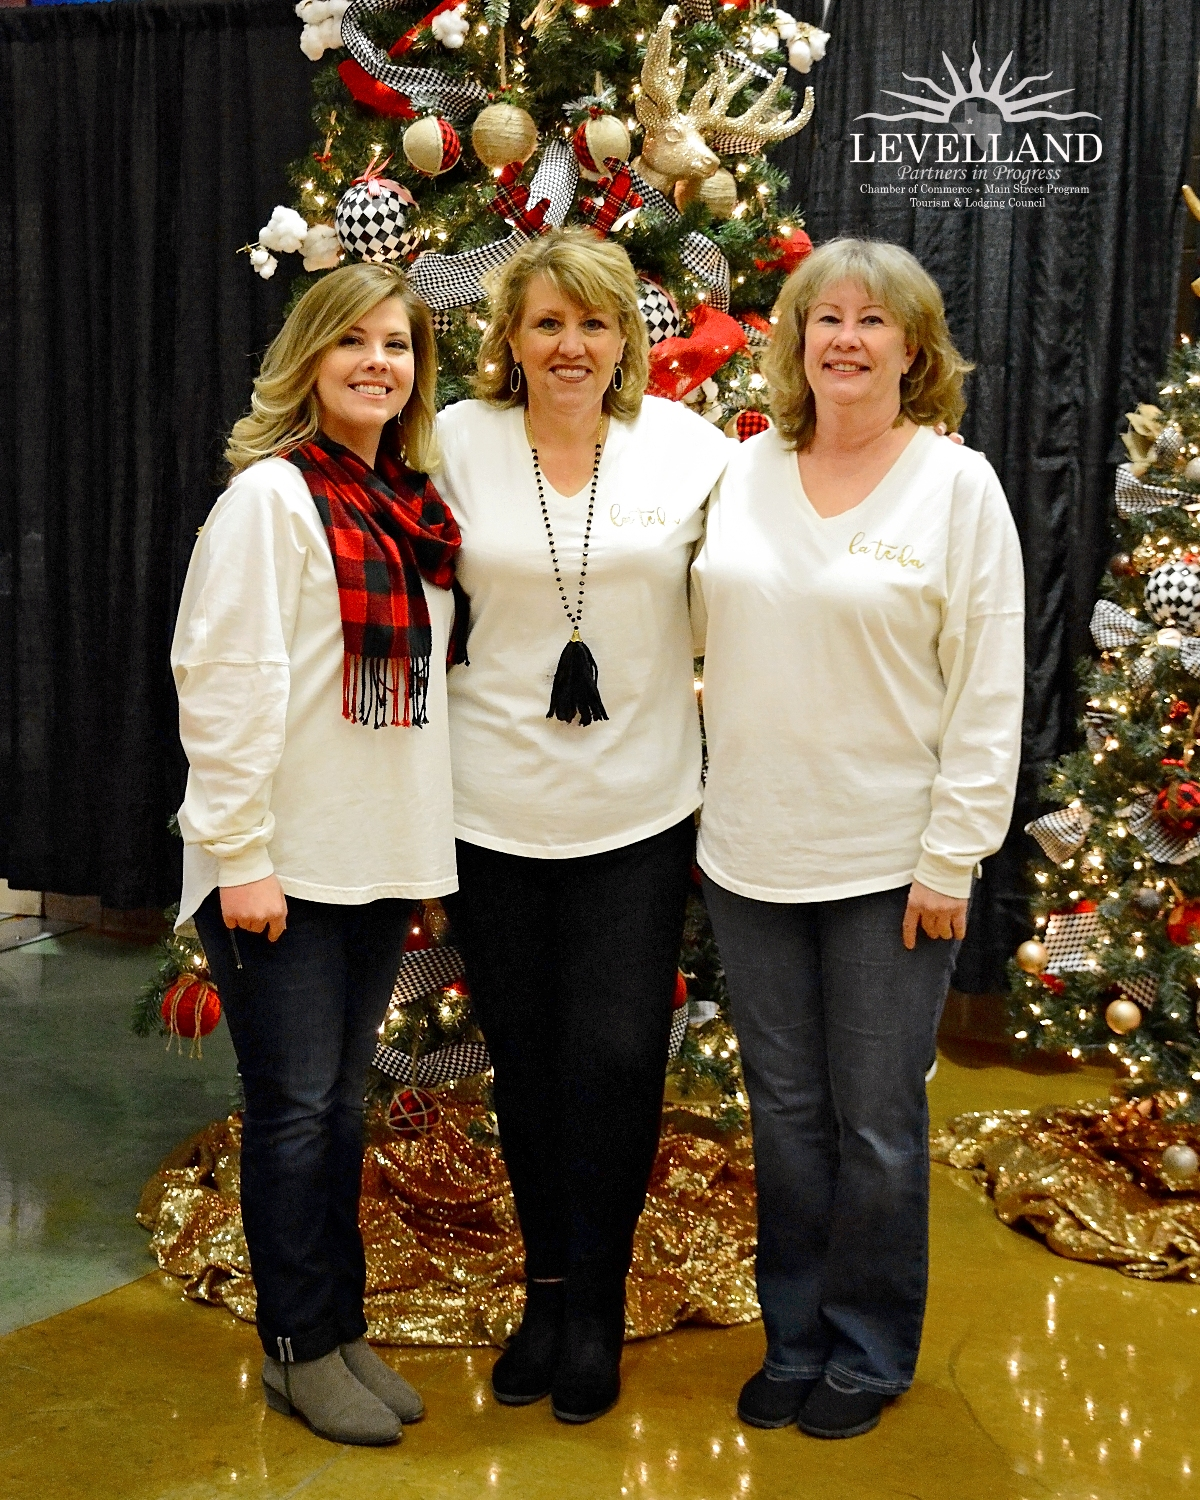 Kori, Mary and Debbie